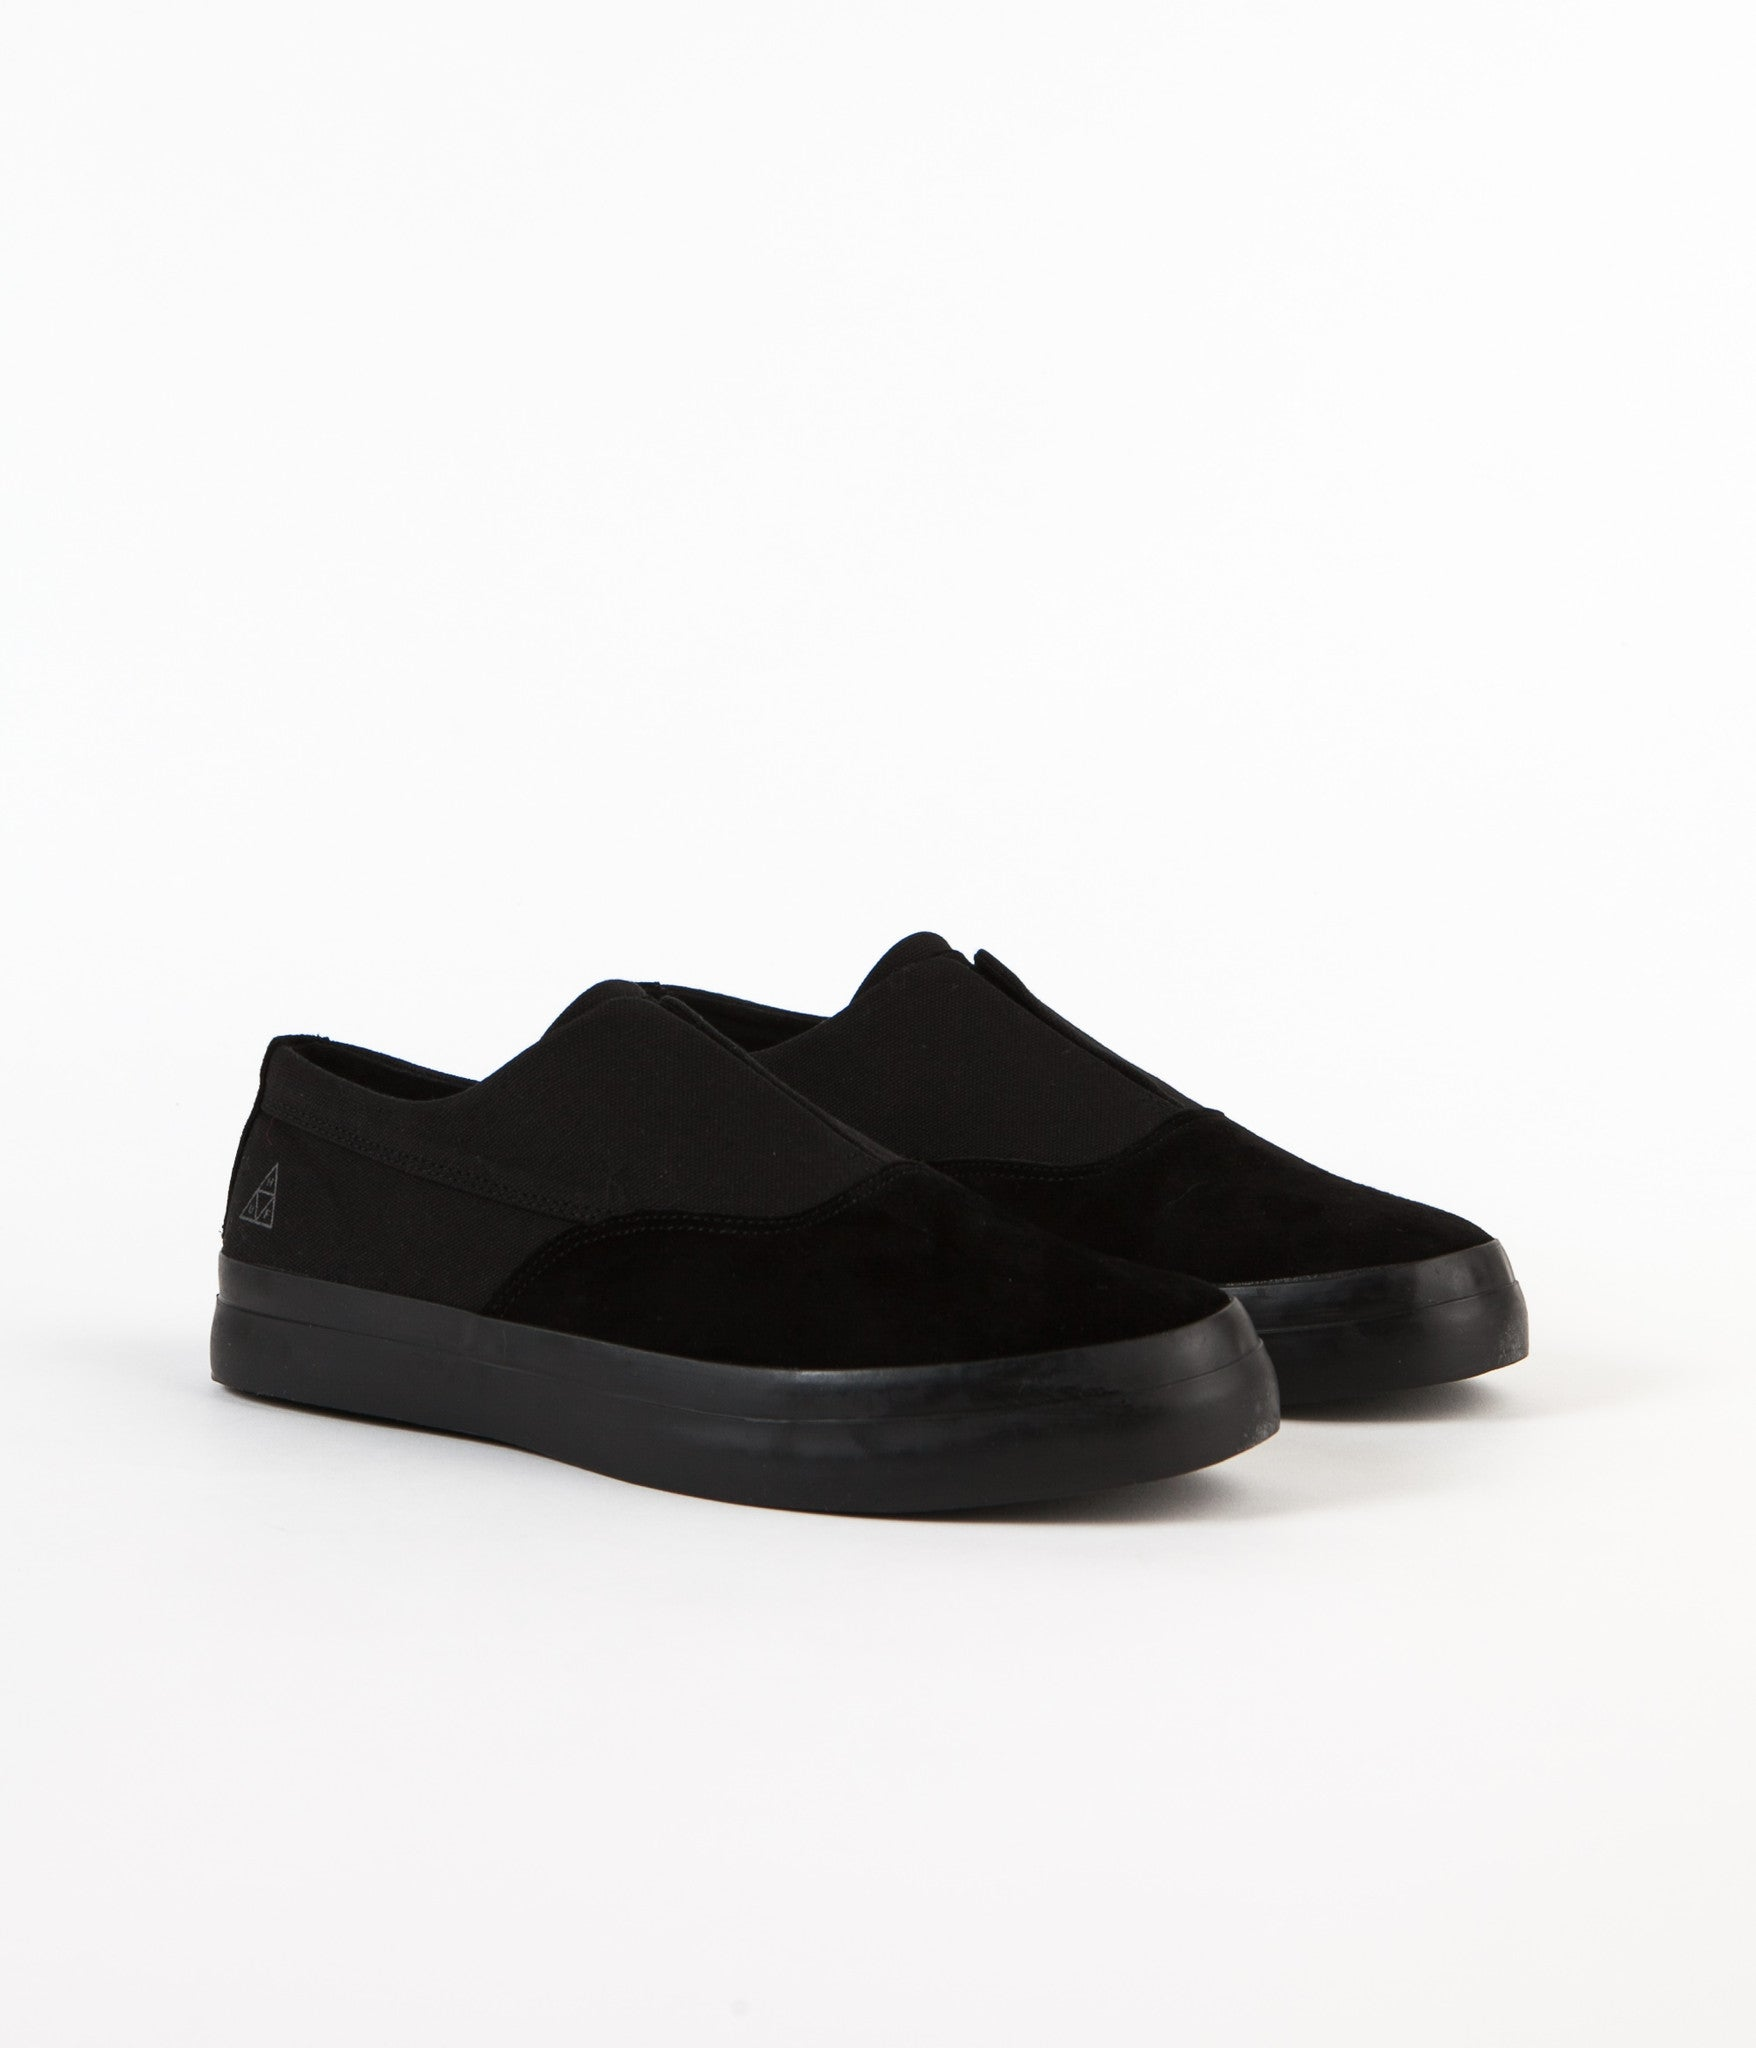 HUF Dylan Slip On Shoes - Black / Black